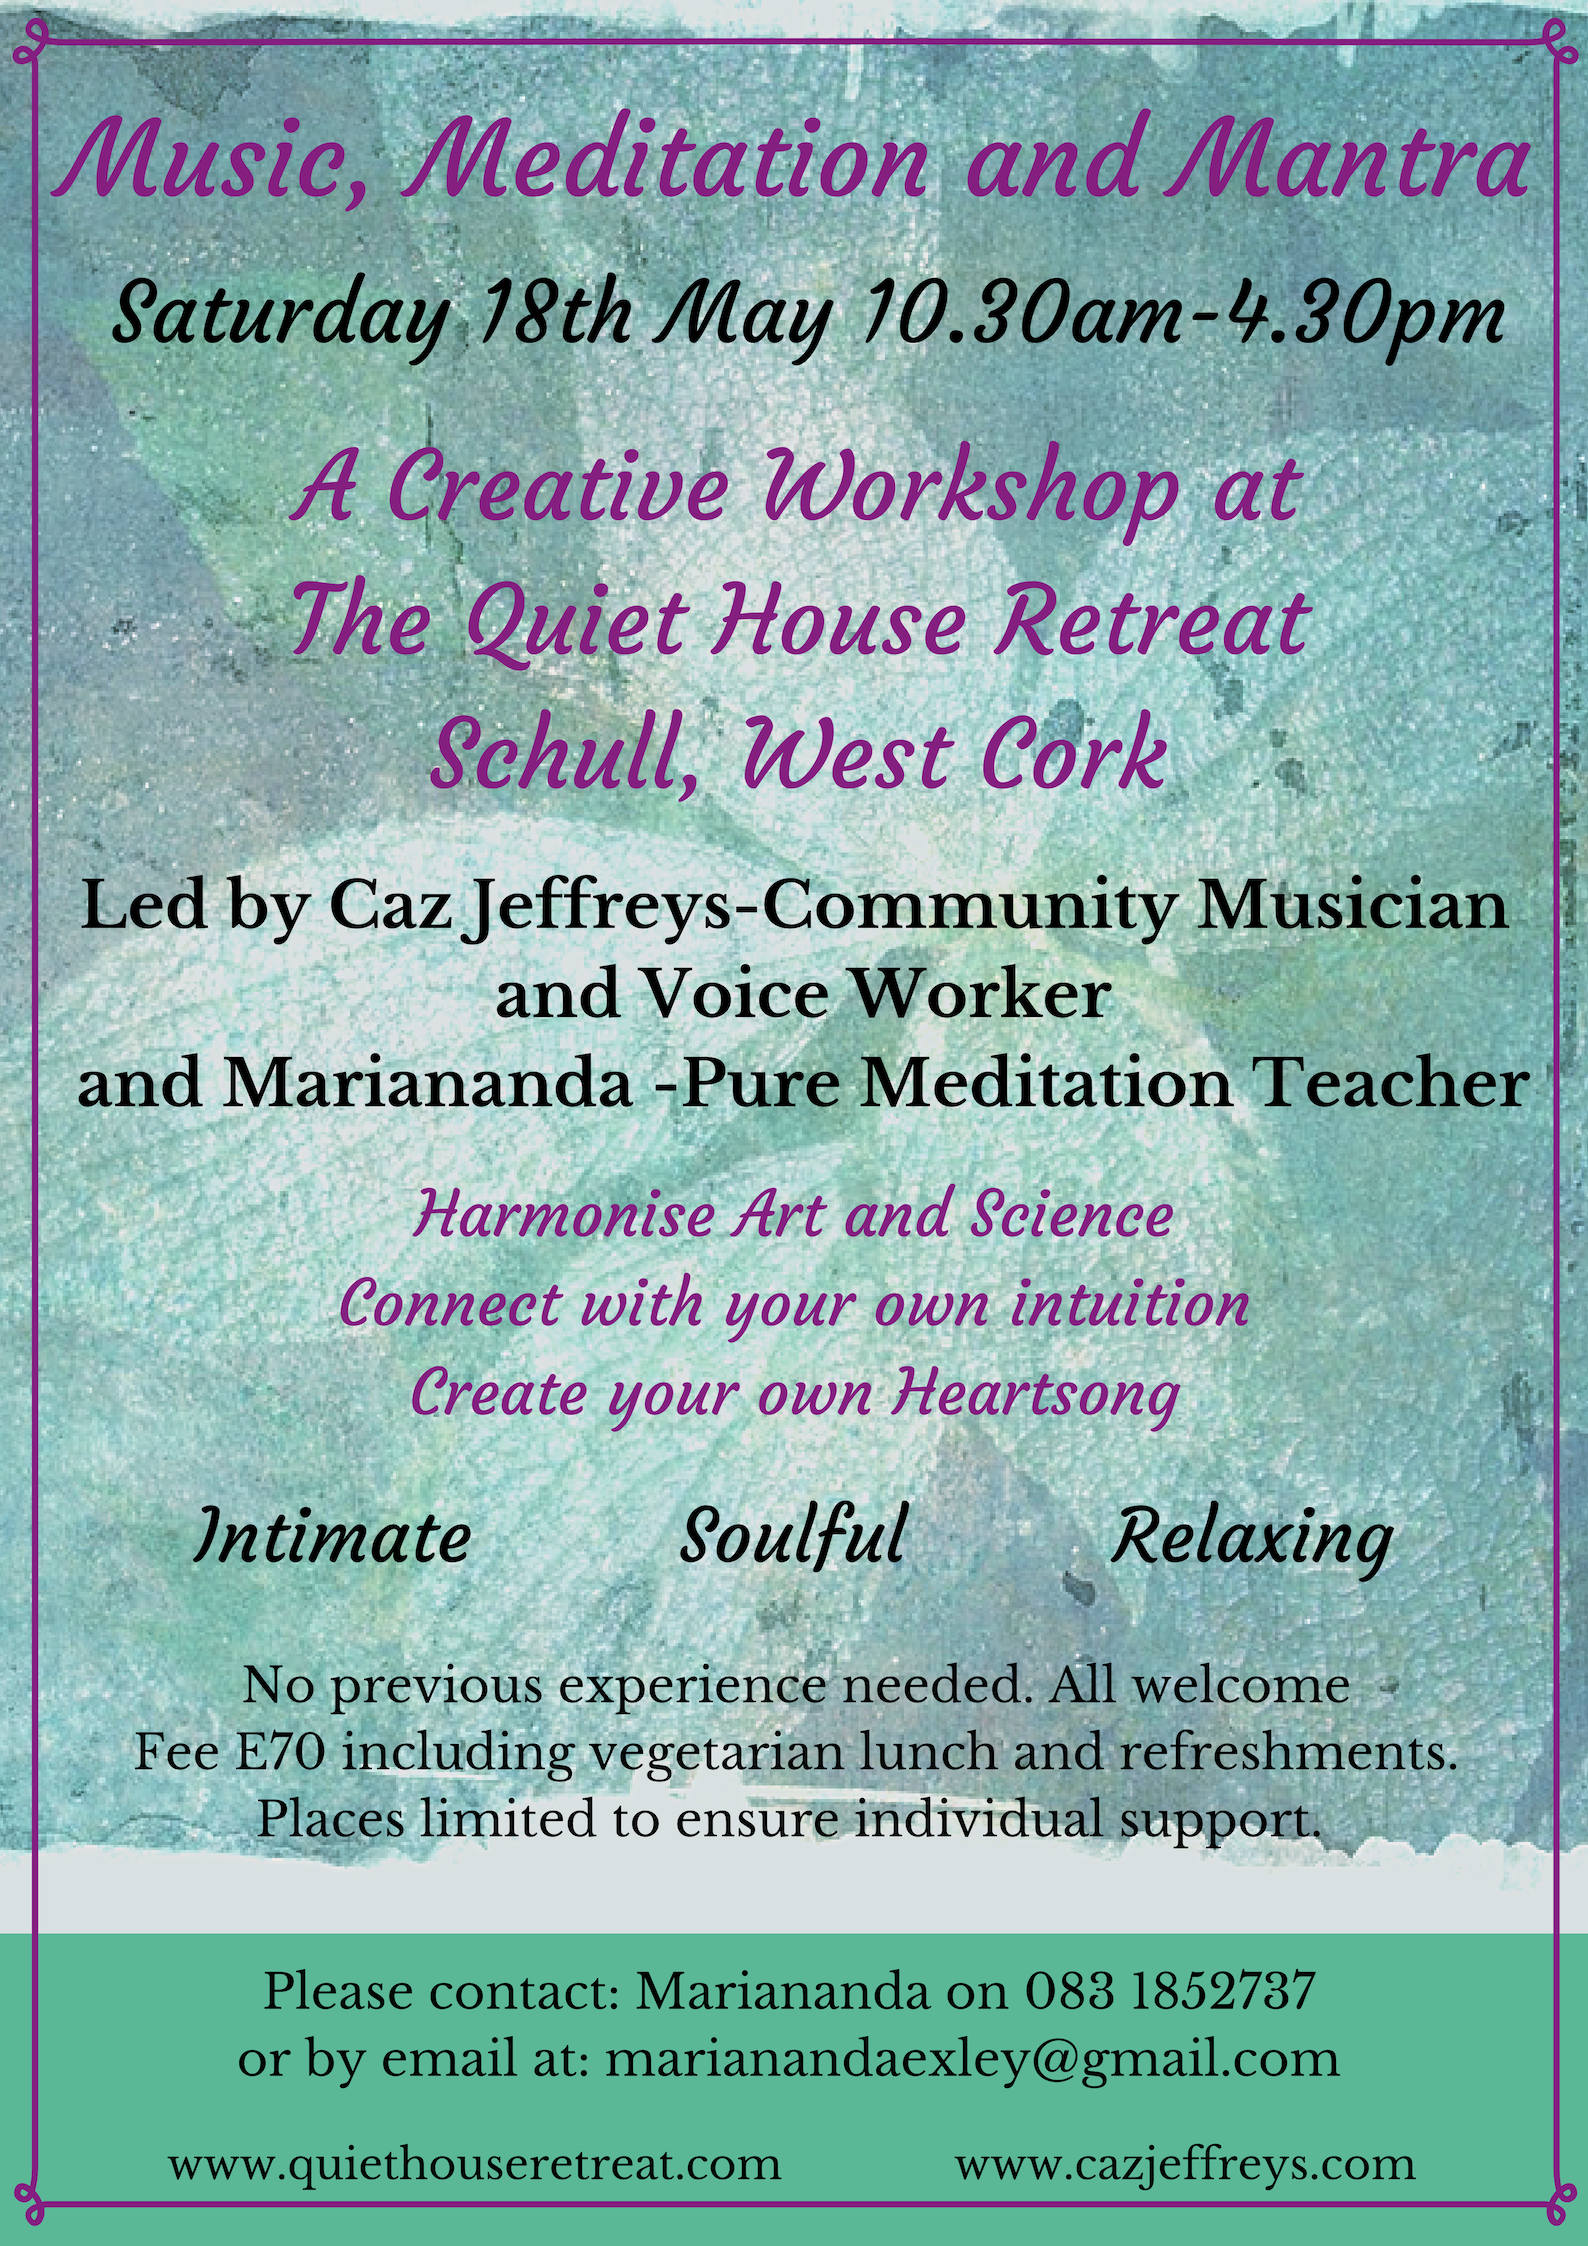 Music, Meditation and Mantra – A Creative Workshop at The Quiet